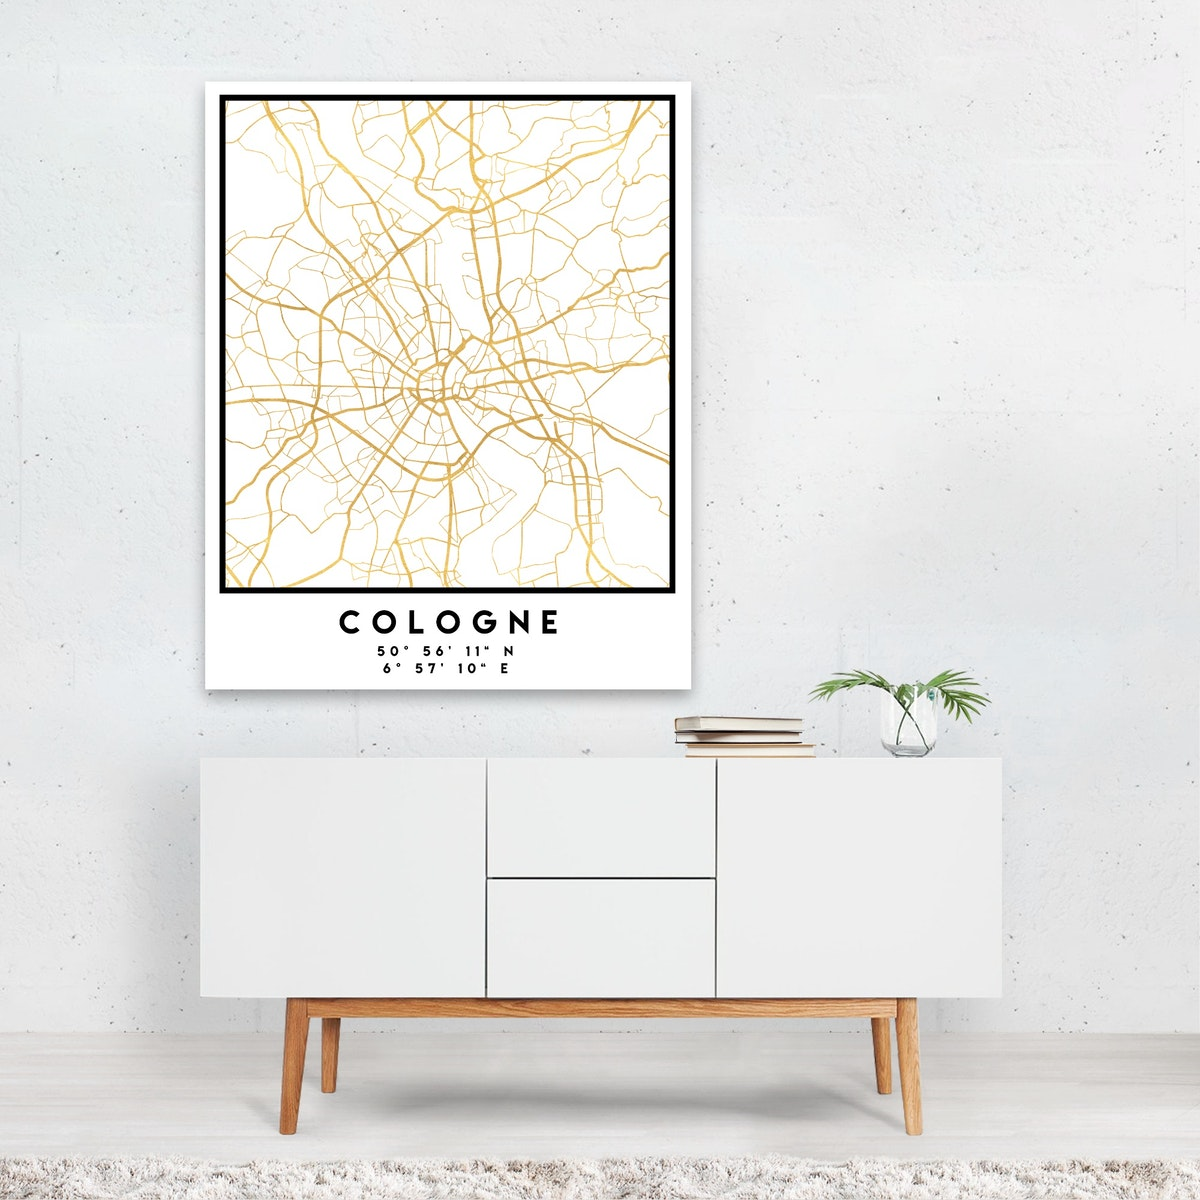 Cologne Street Map